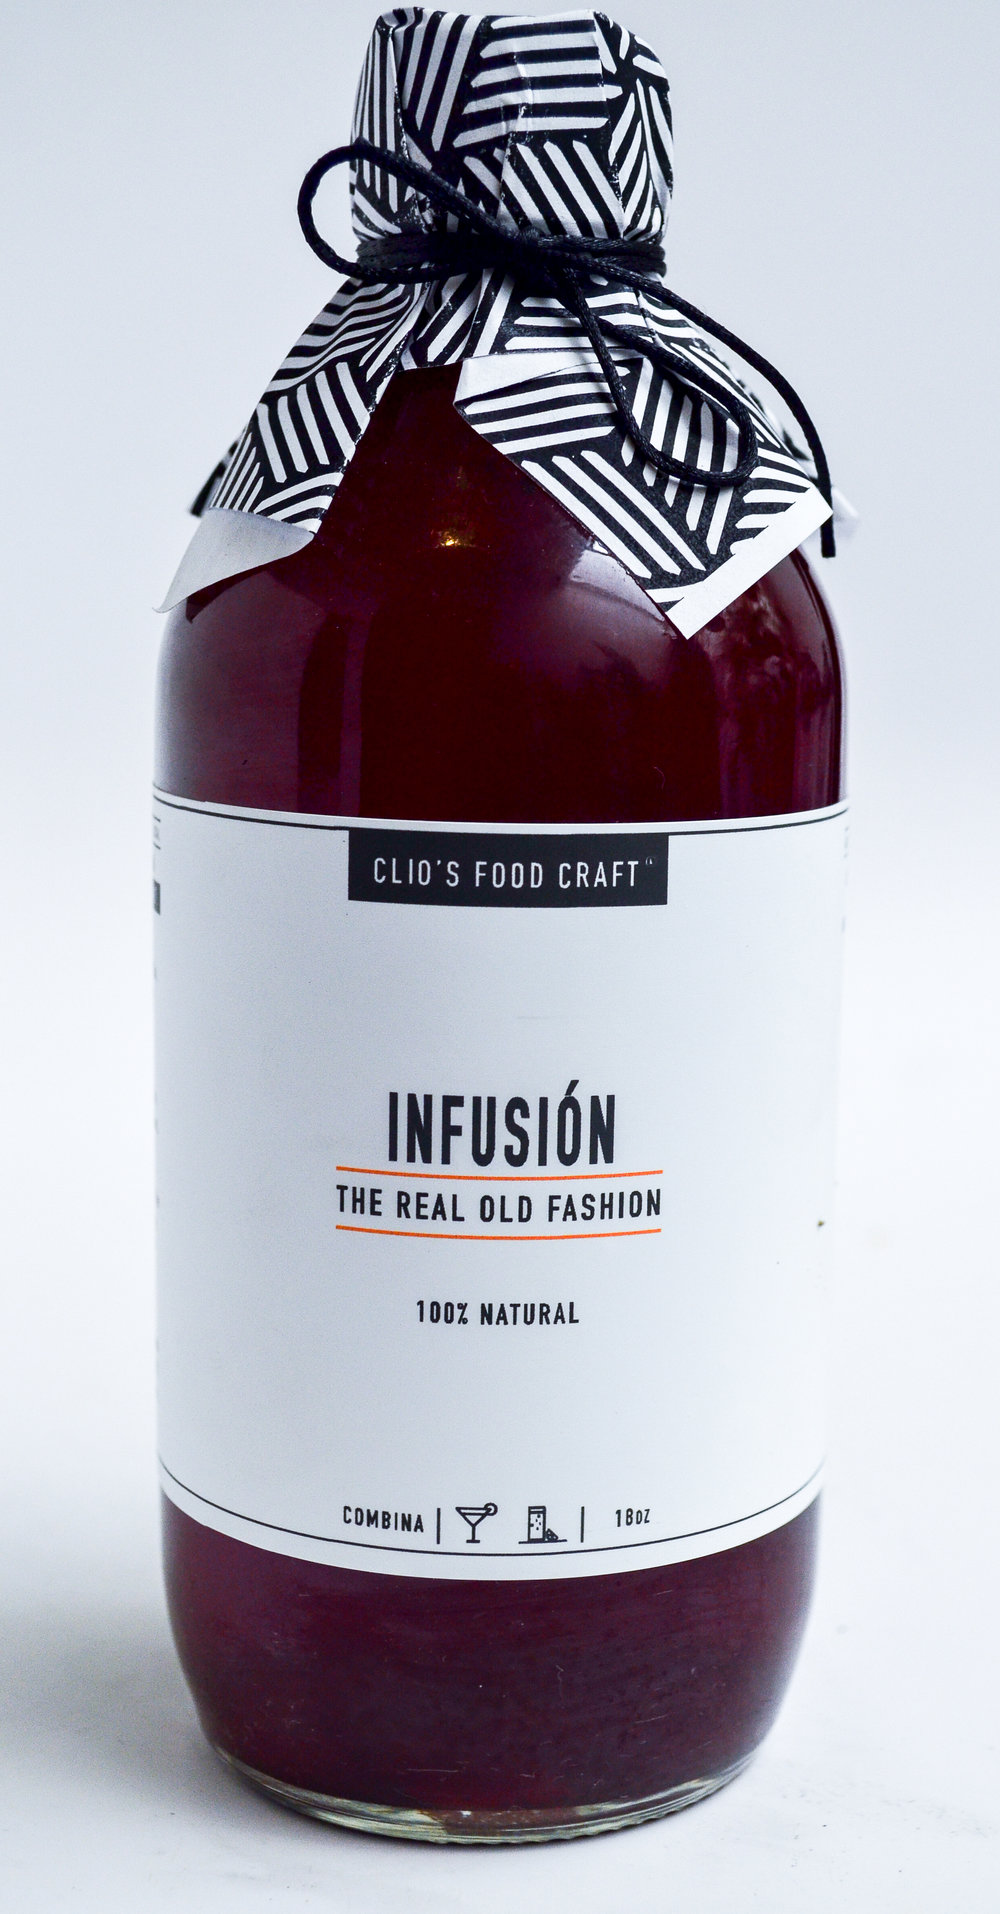 INFUSION THE REAL OLD FASHION - Q.175 18oz